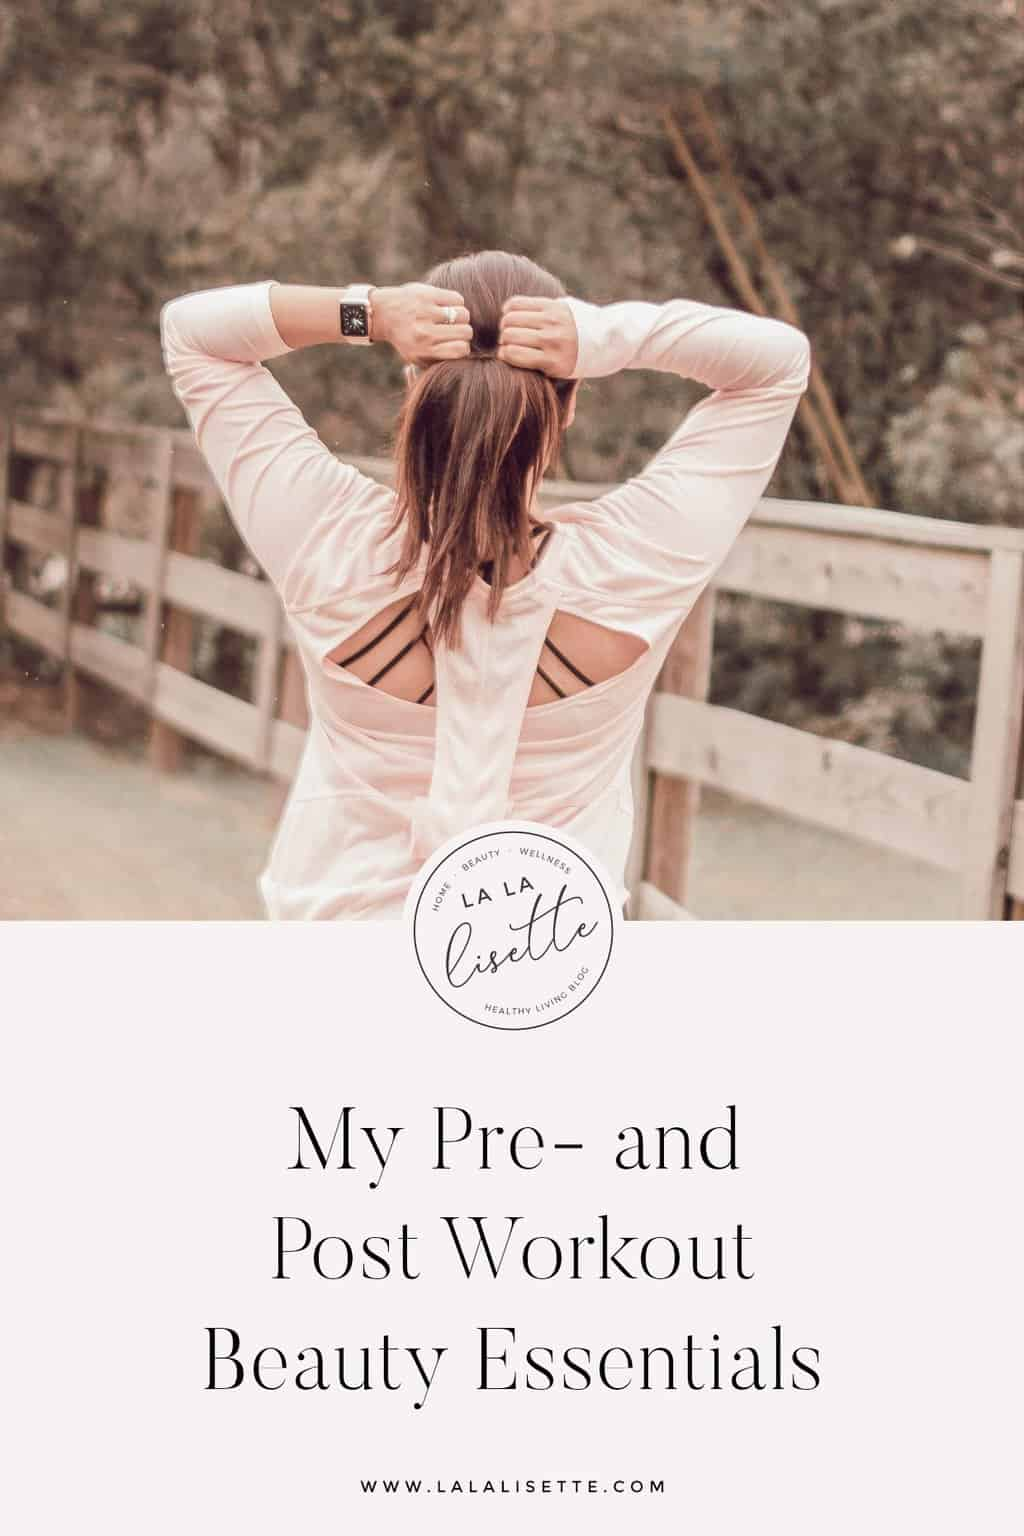 image of a woman tightening her ponytail with text: My Pre and Post Workout Beauty Essentials